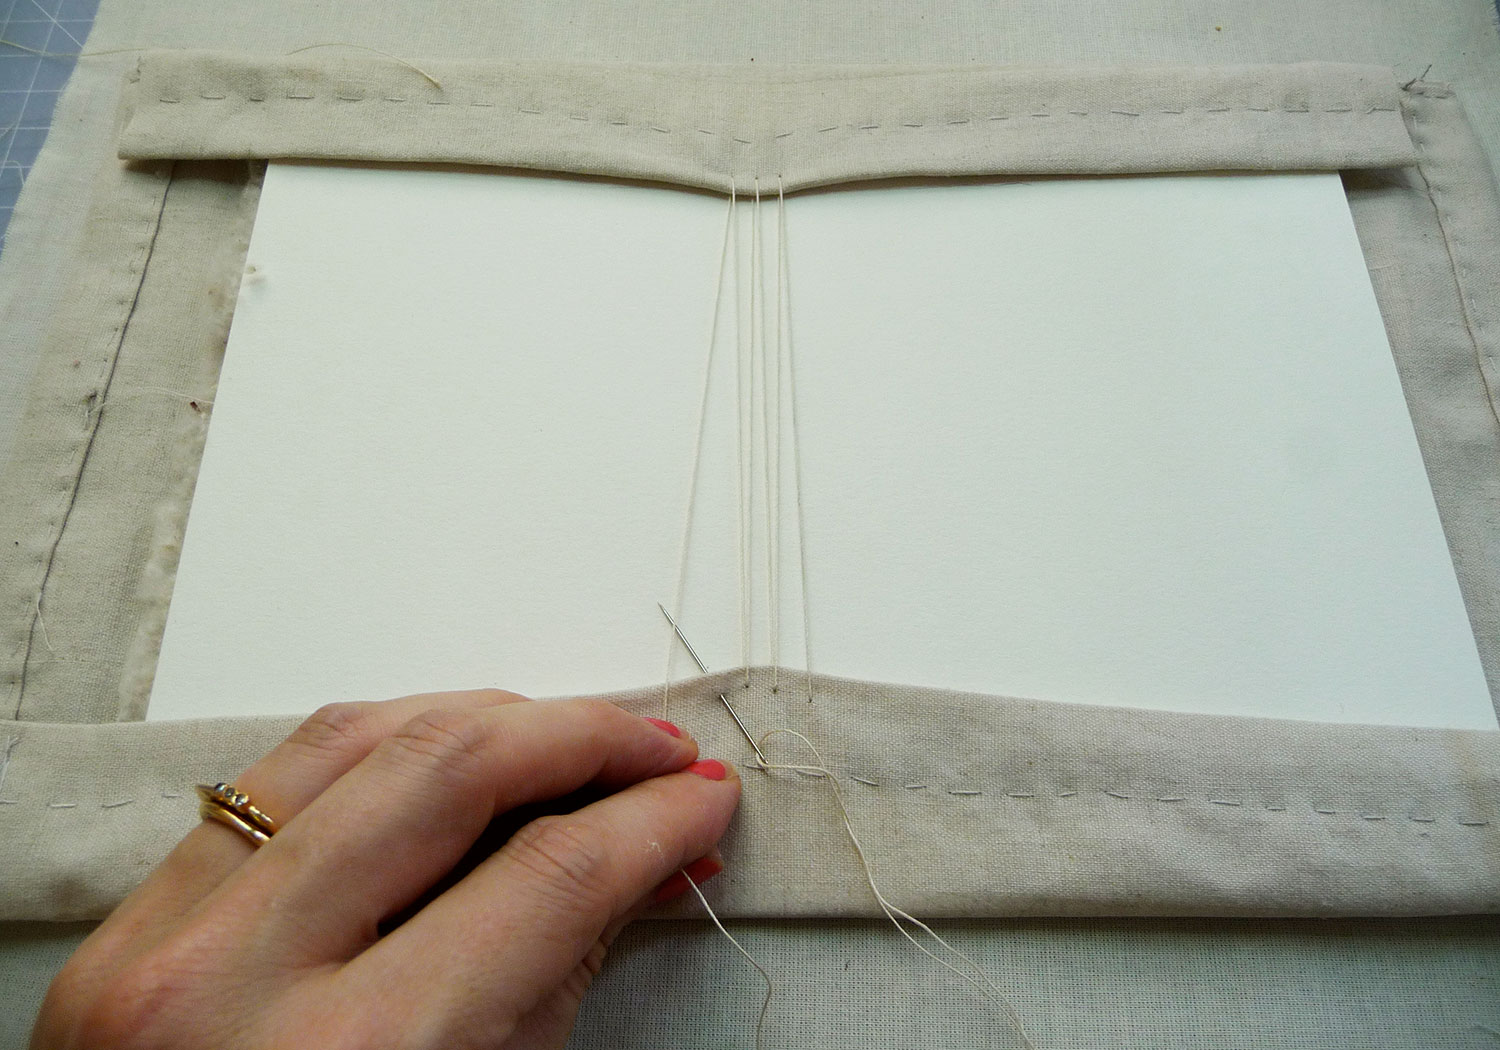 Lacing the embroidery, which is the safest (and most time-consuming) mounting method